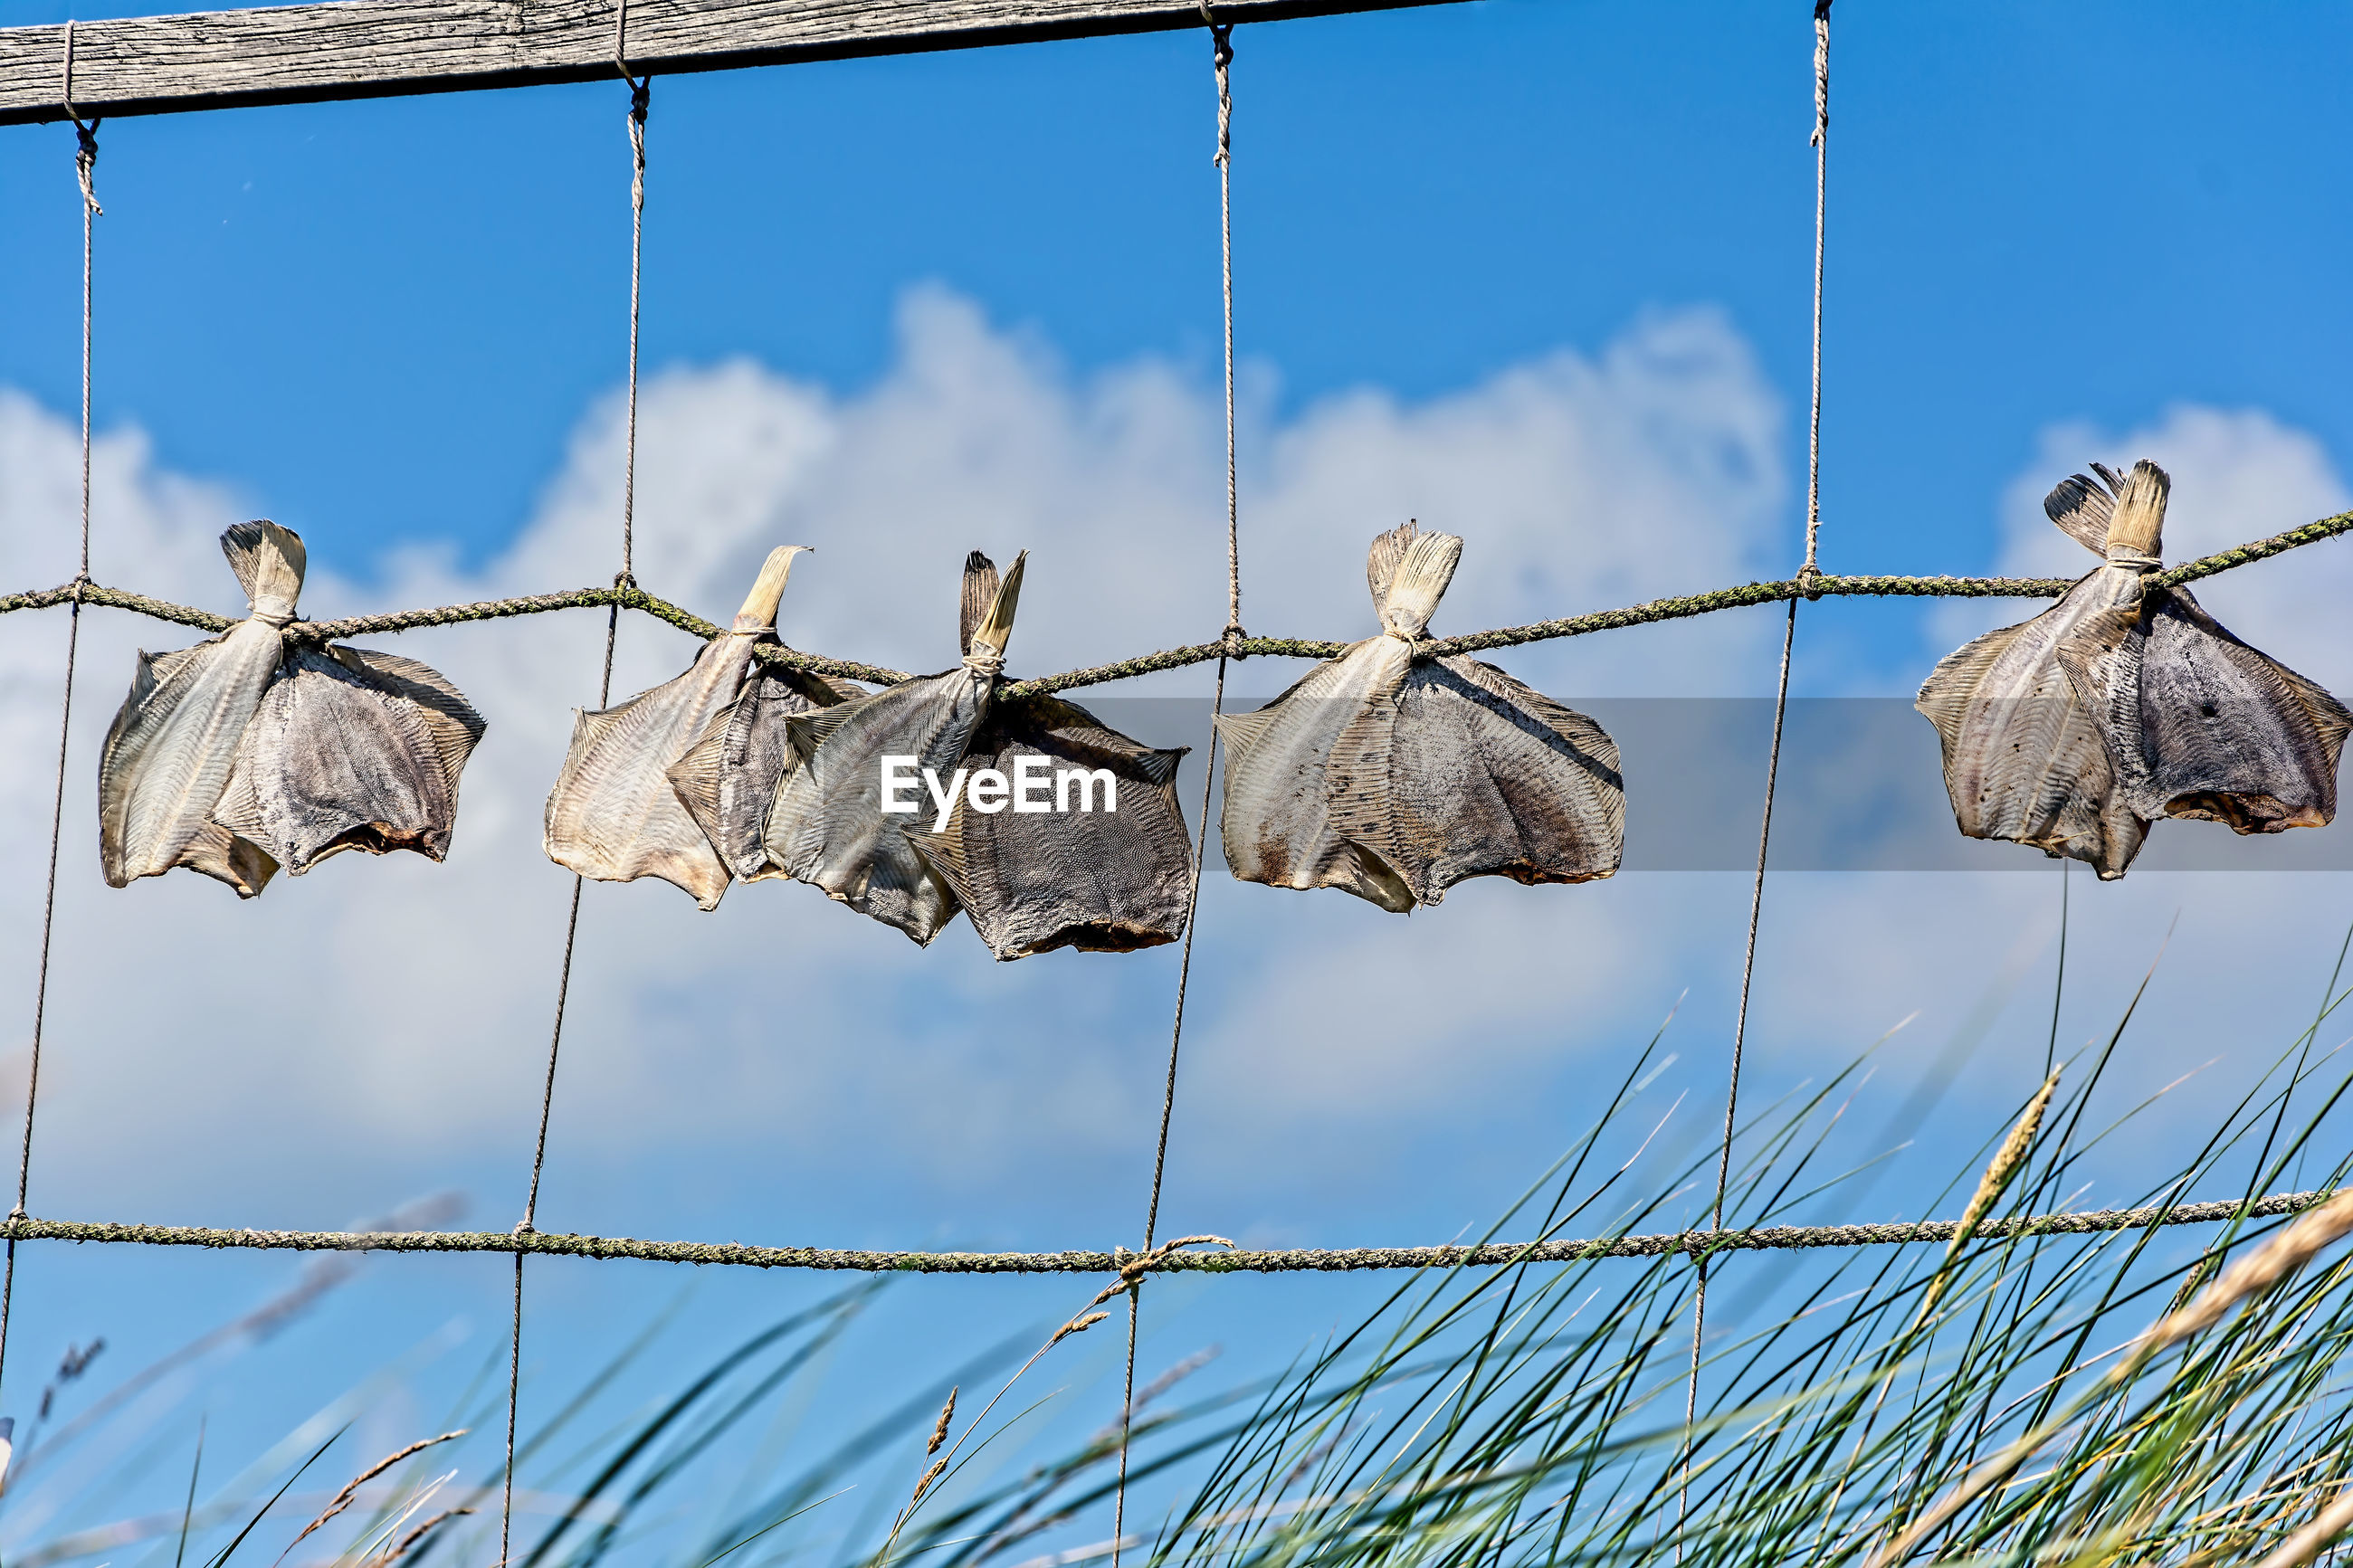 Low angle view of fishes drying on fence against sky